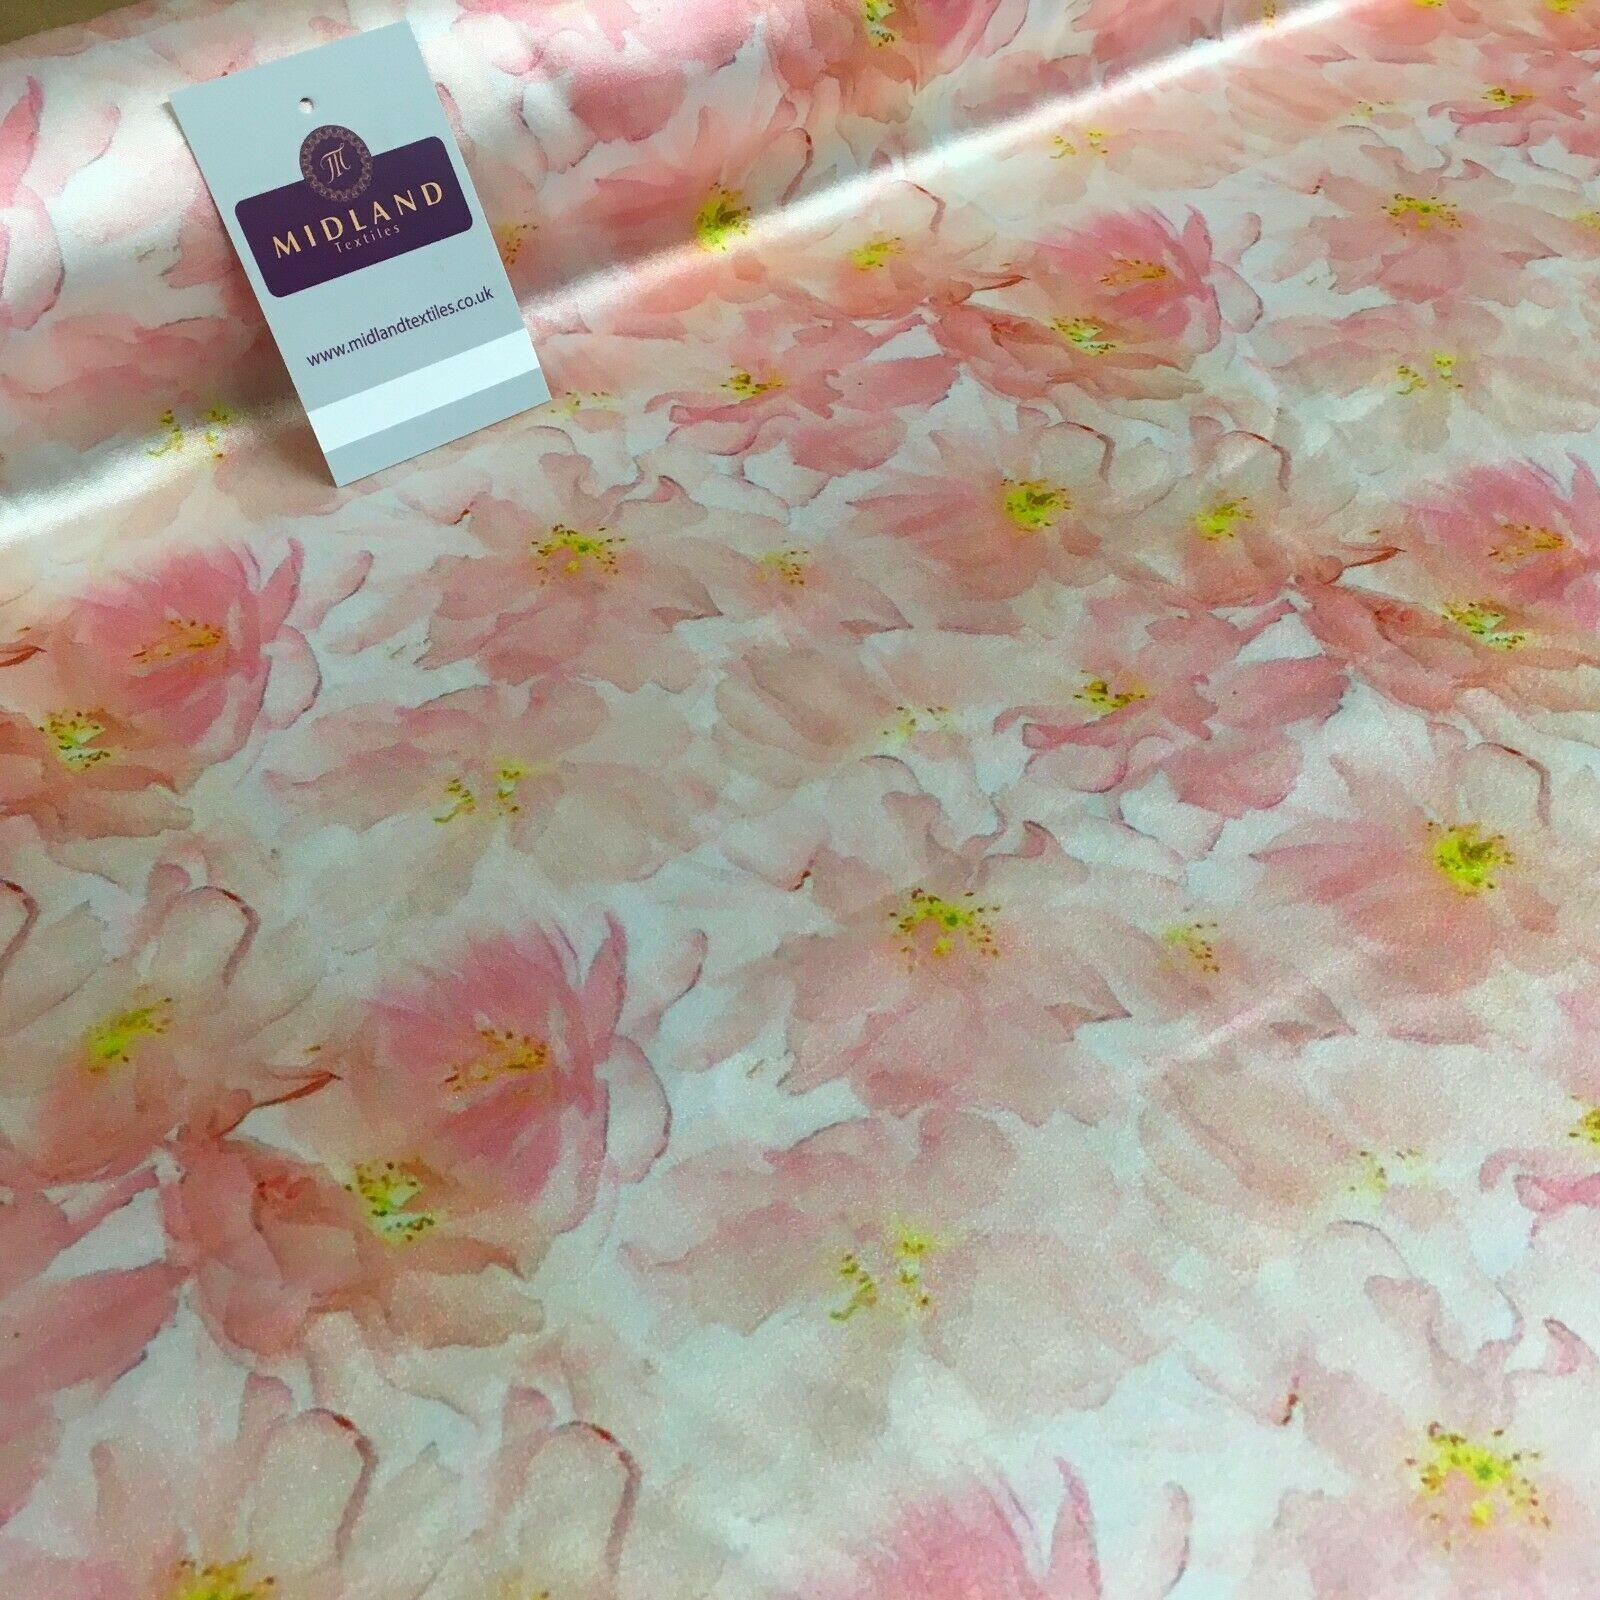 Peach Floral Silky Digital Printed  Dress Fabric 150 cm MK1327-3